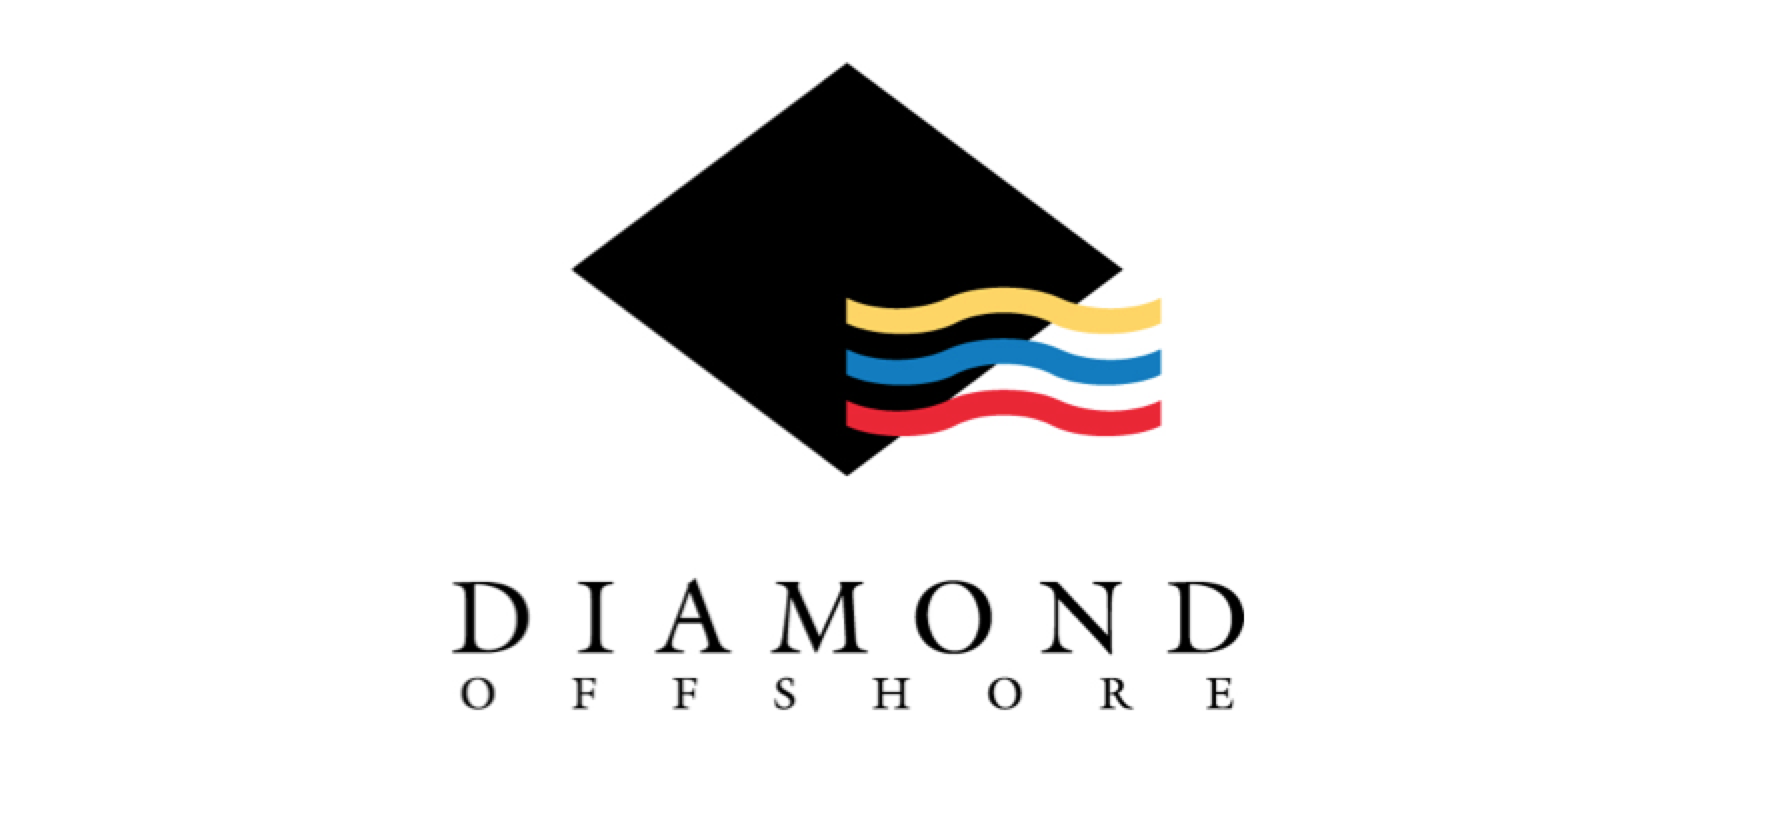 Diamond Offshore Drilling Inc (NYSE:DO) Announces 4Q2015 Financial Results, Net Loss Increases To $2...